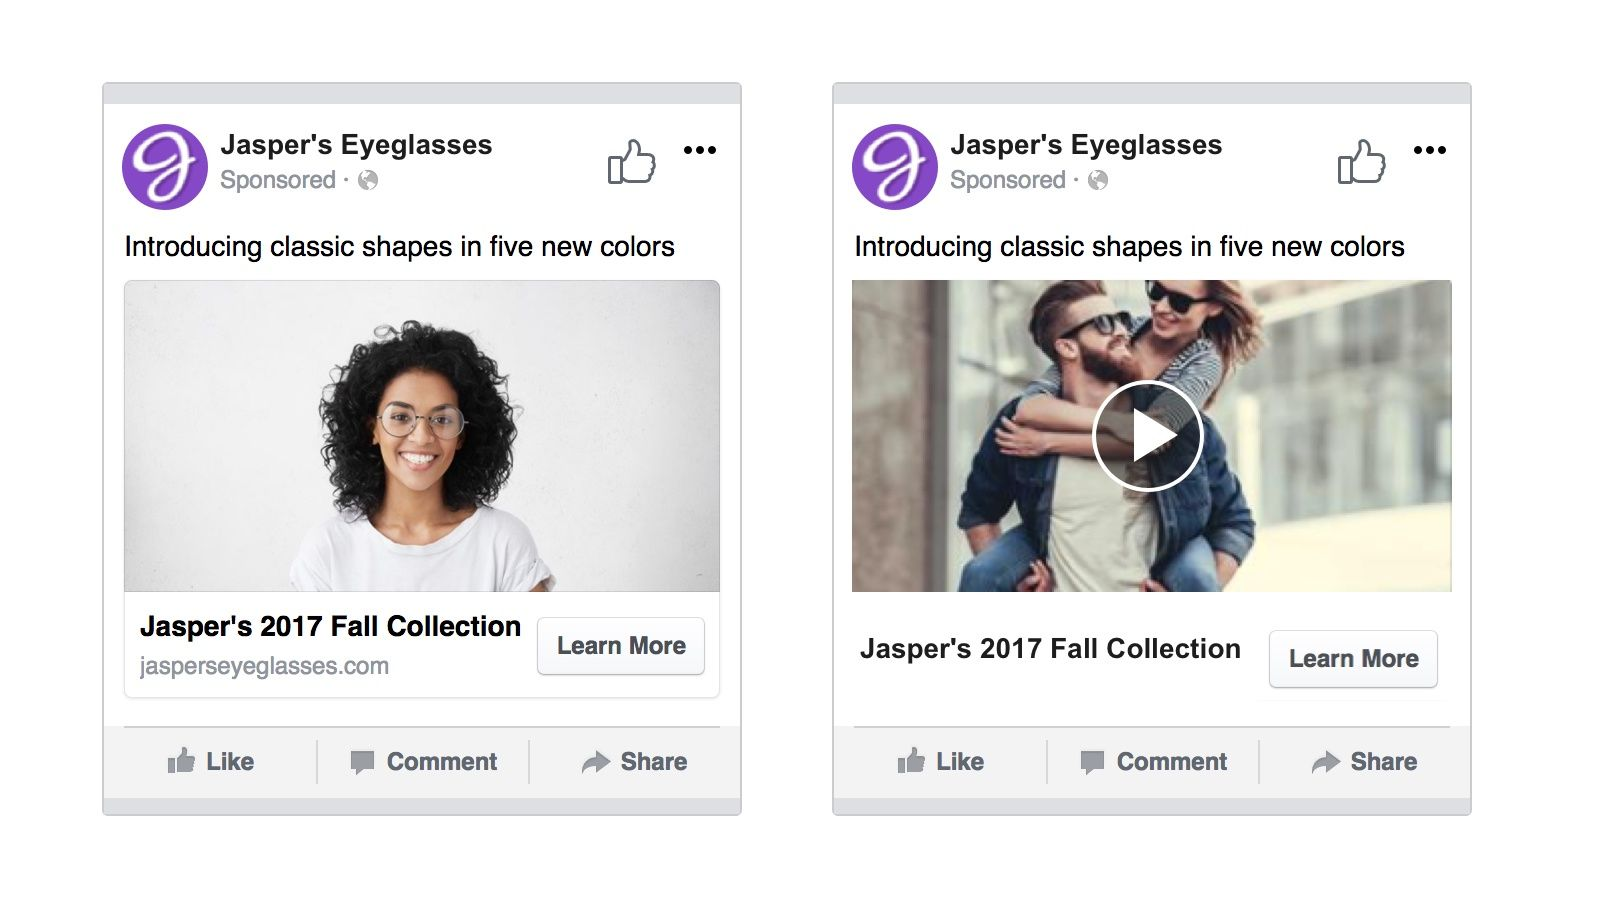 Facebook Adds Creative Split Testing Improved Ad Analysis Options